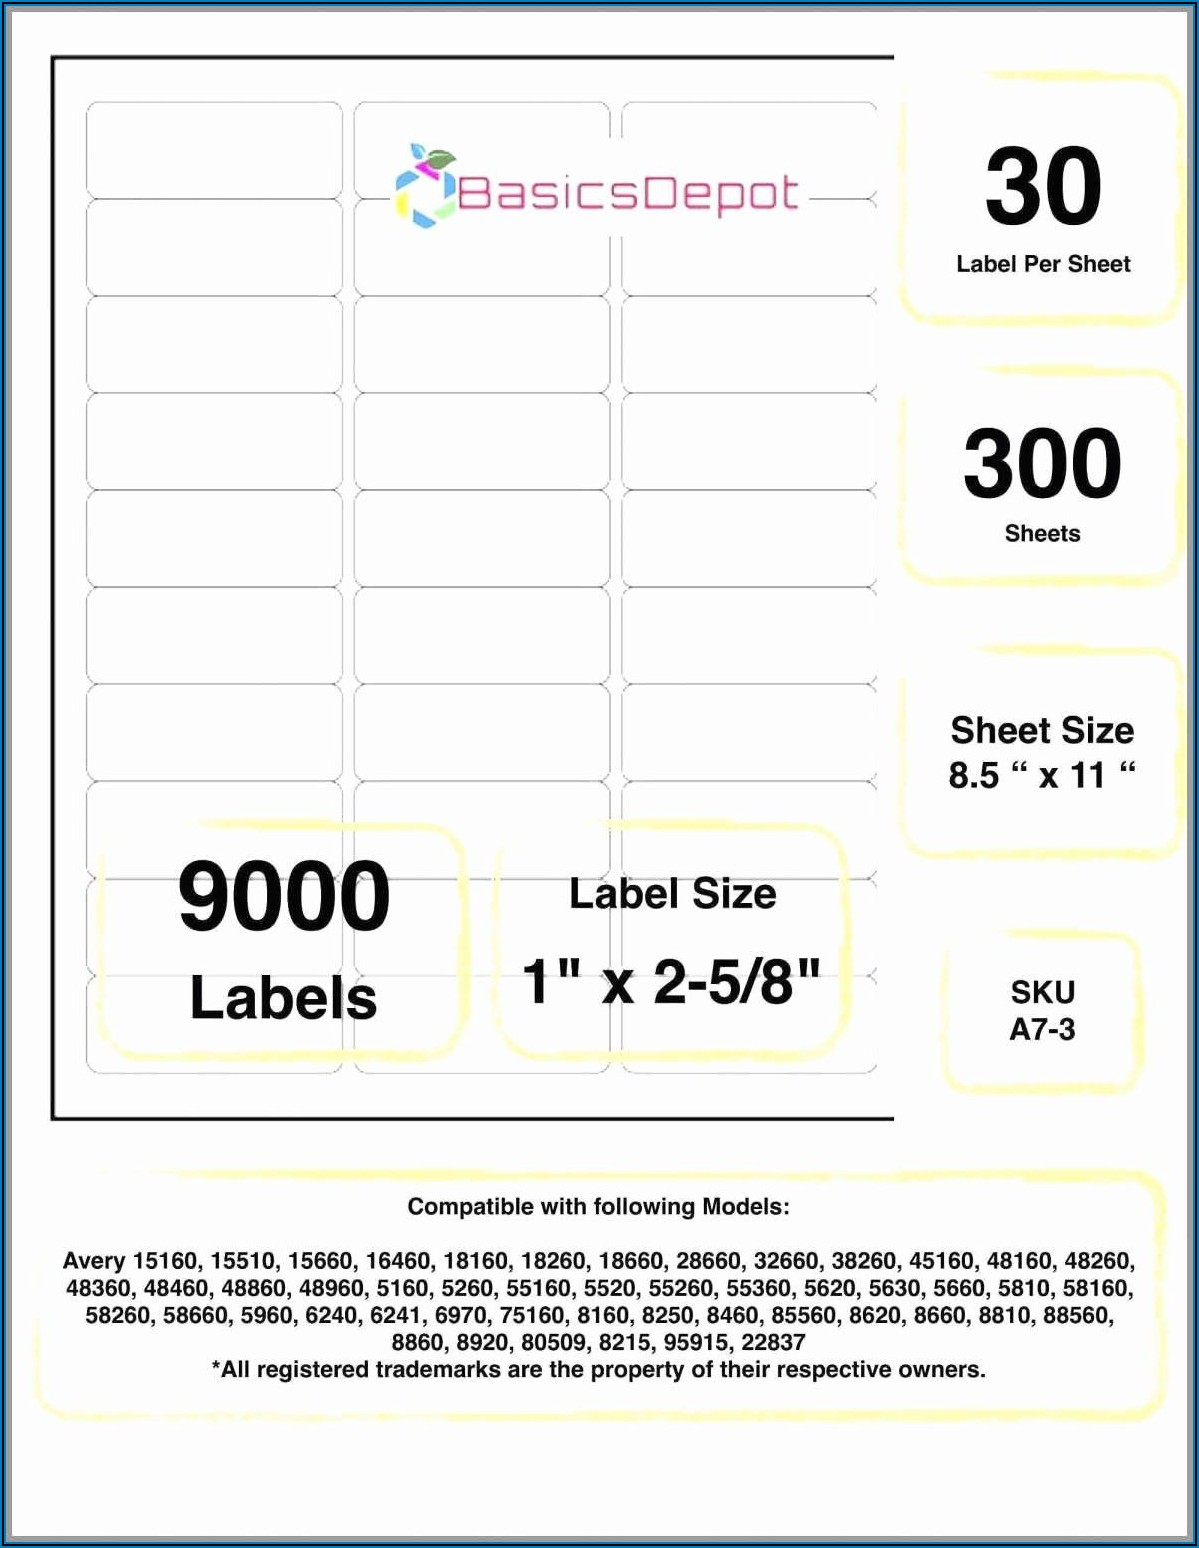 Avery Mailing Label Template 5660